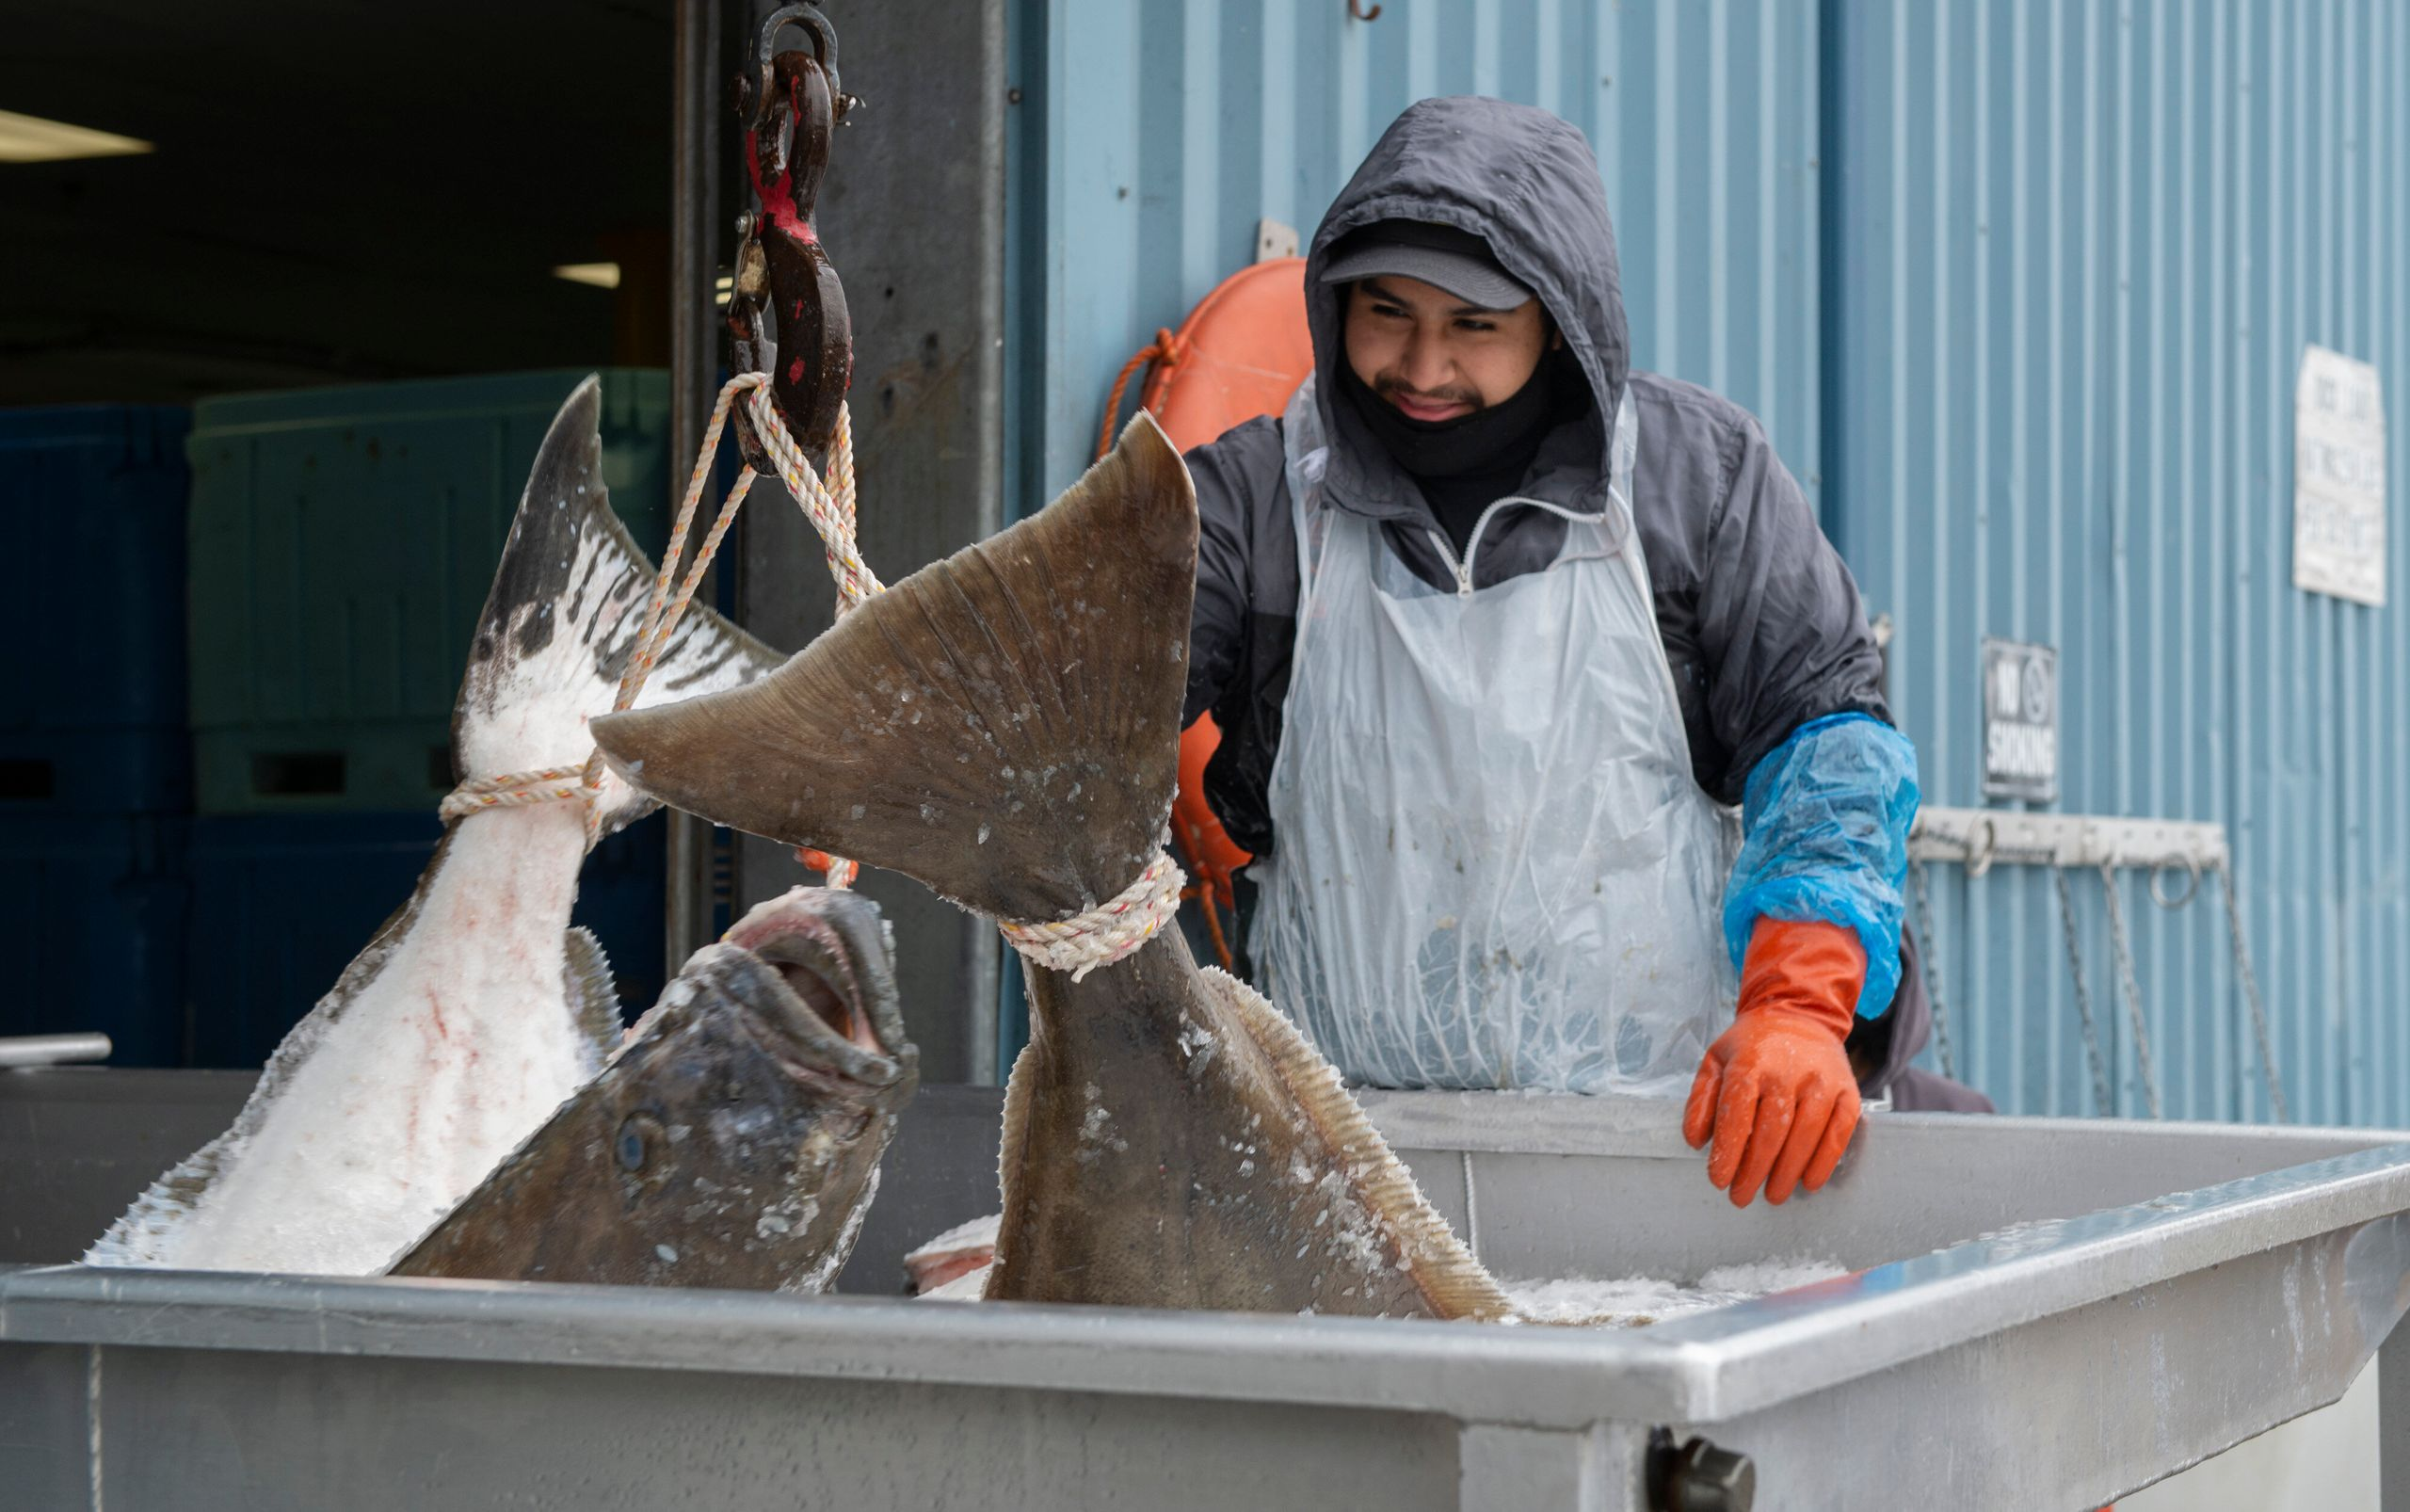 Once caught, fish are kept on ice for the journey back to port, where they are processed and packed for delivery.